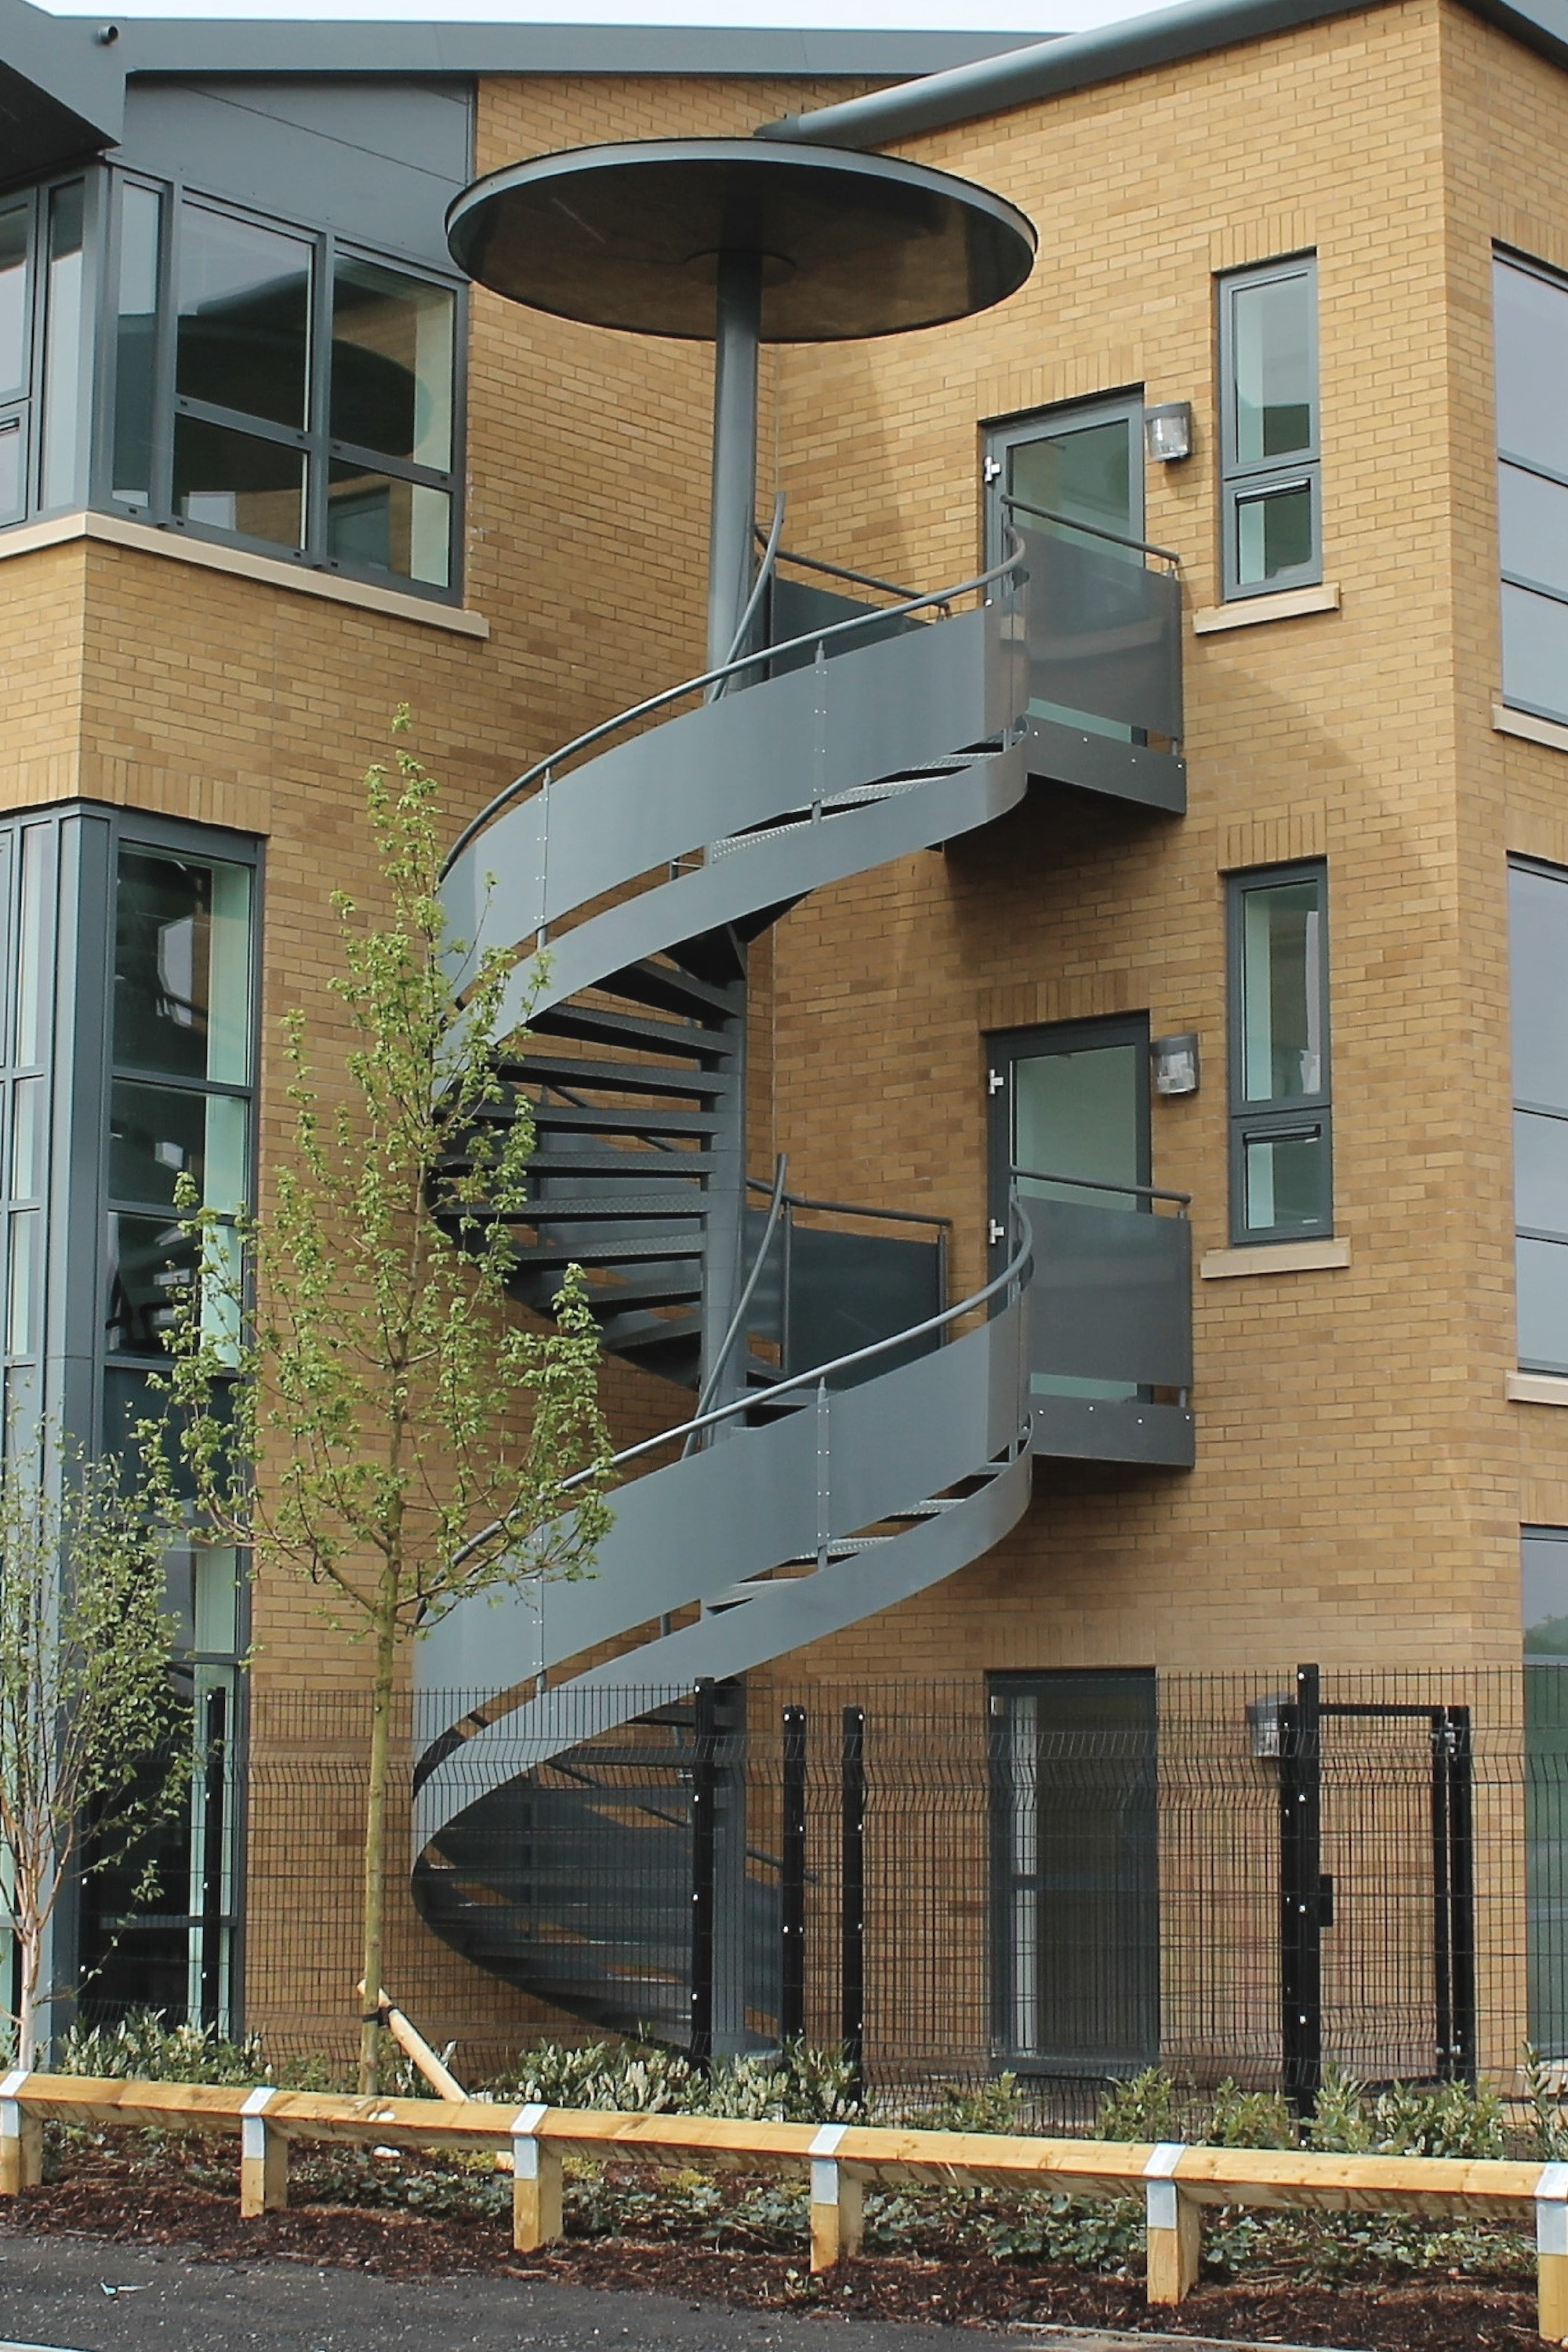 Spiral Fire Escape Stairs External Internal Escape Stairs | External Metal Fire Escape Stairs | Metal Railings | Stock Photo | Stair Railing | External Spiral Staircase | Fire Safety